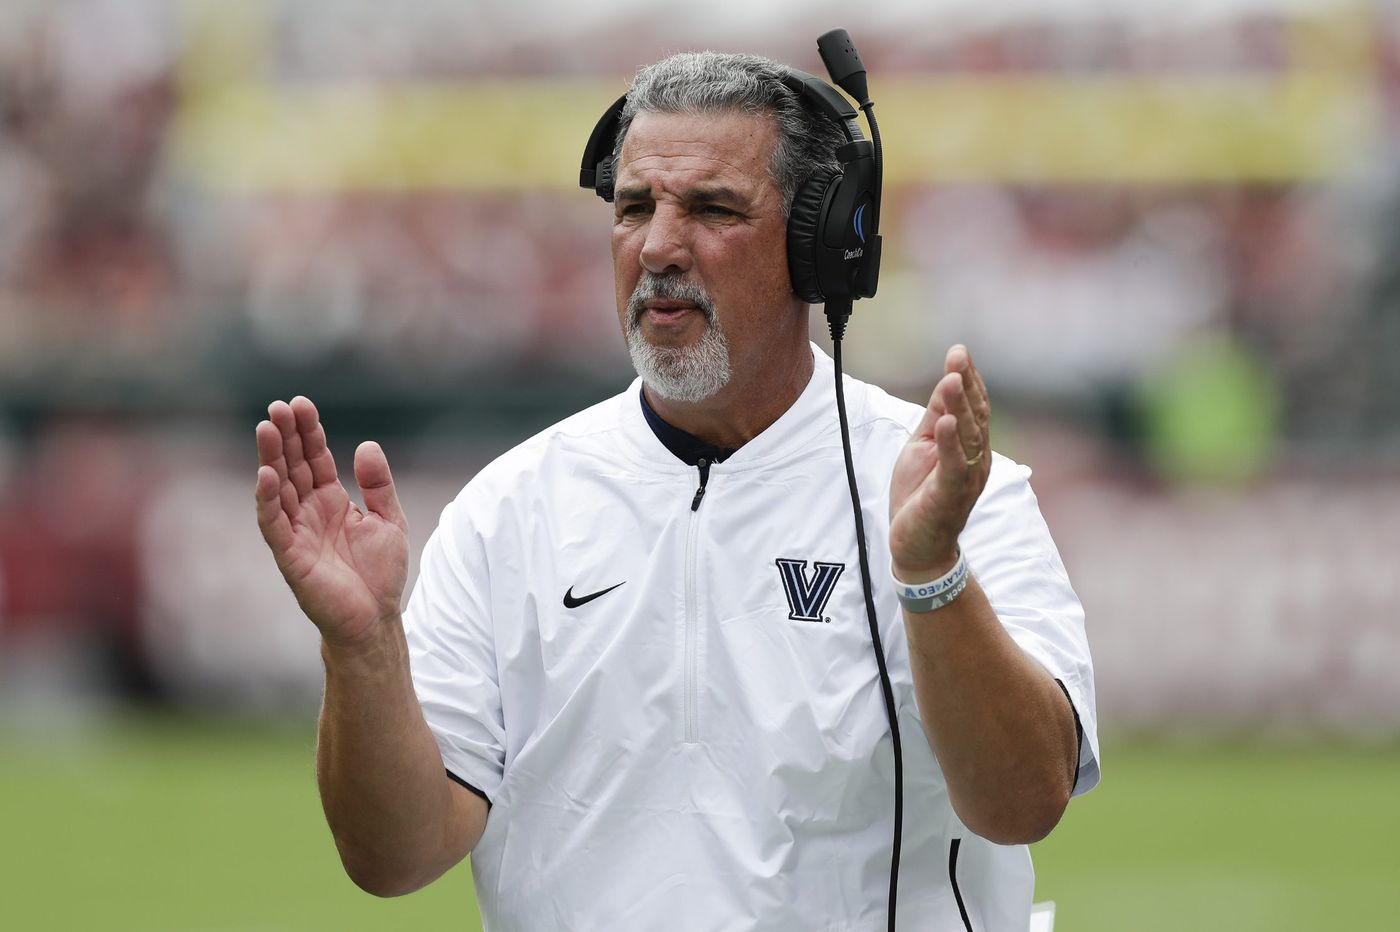 Depleted Villanova gets blown out, 37-0, by James Madison